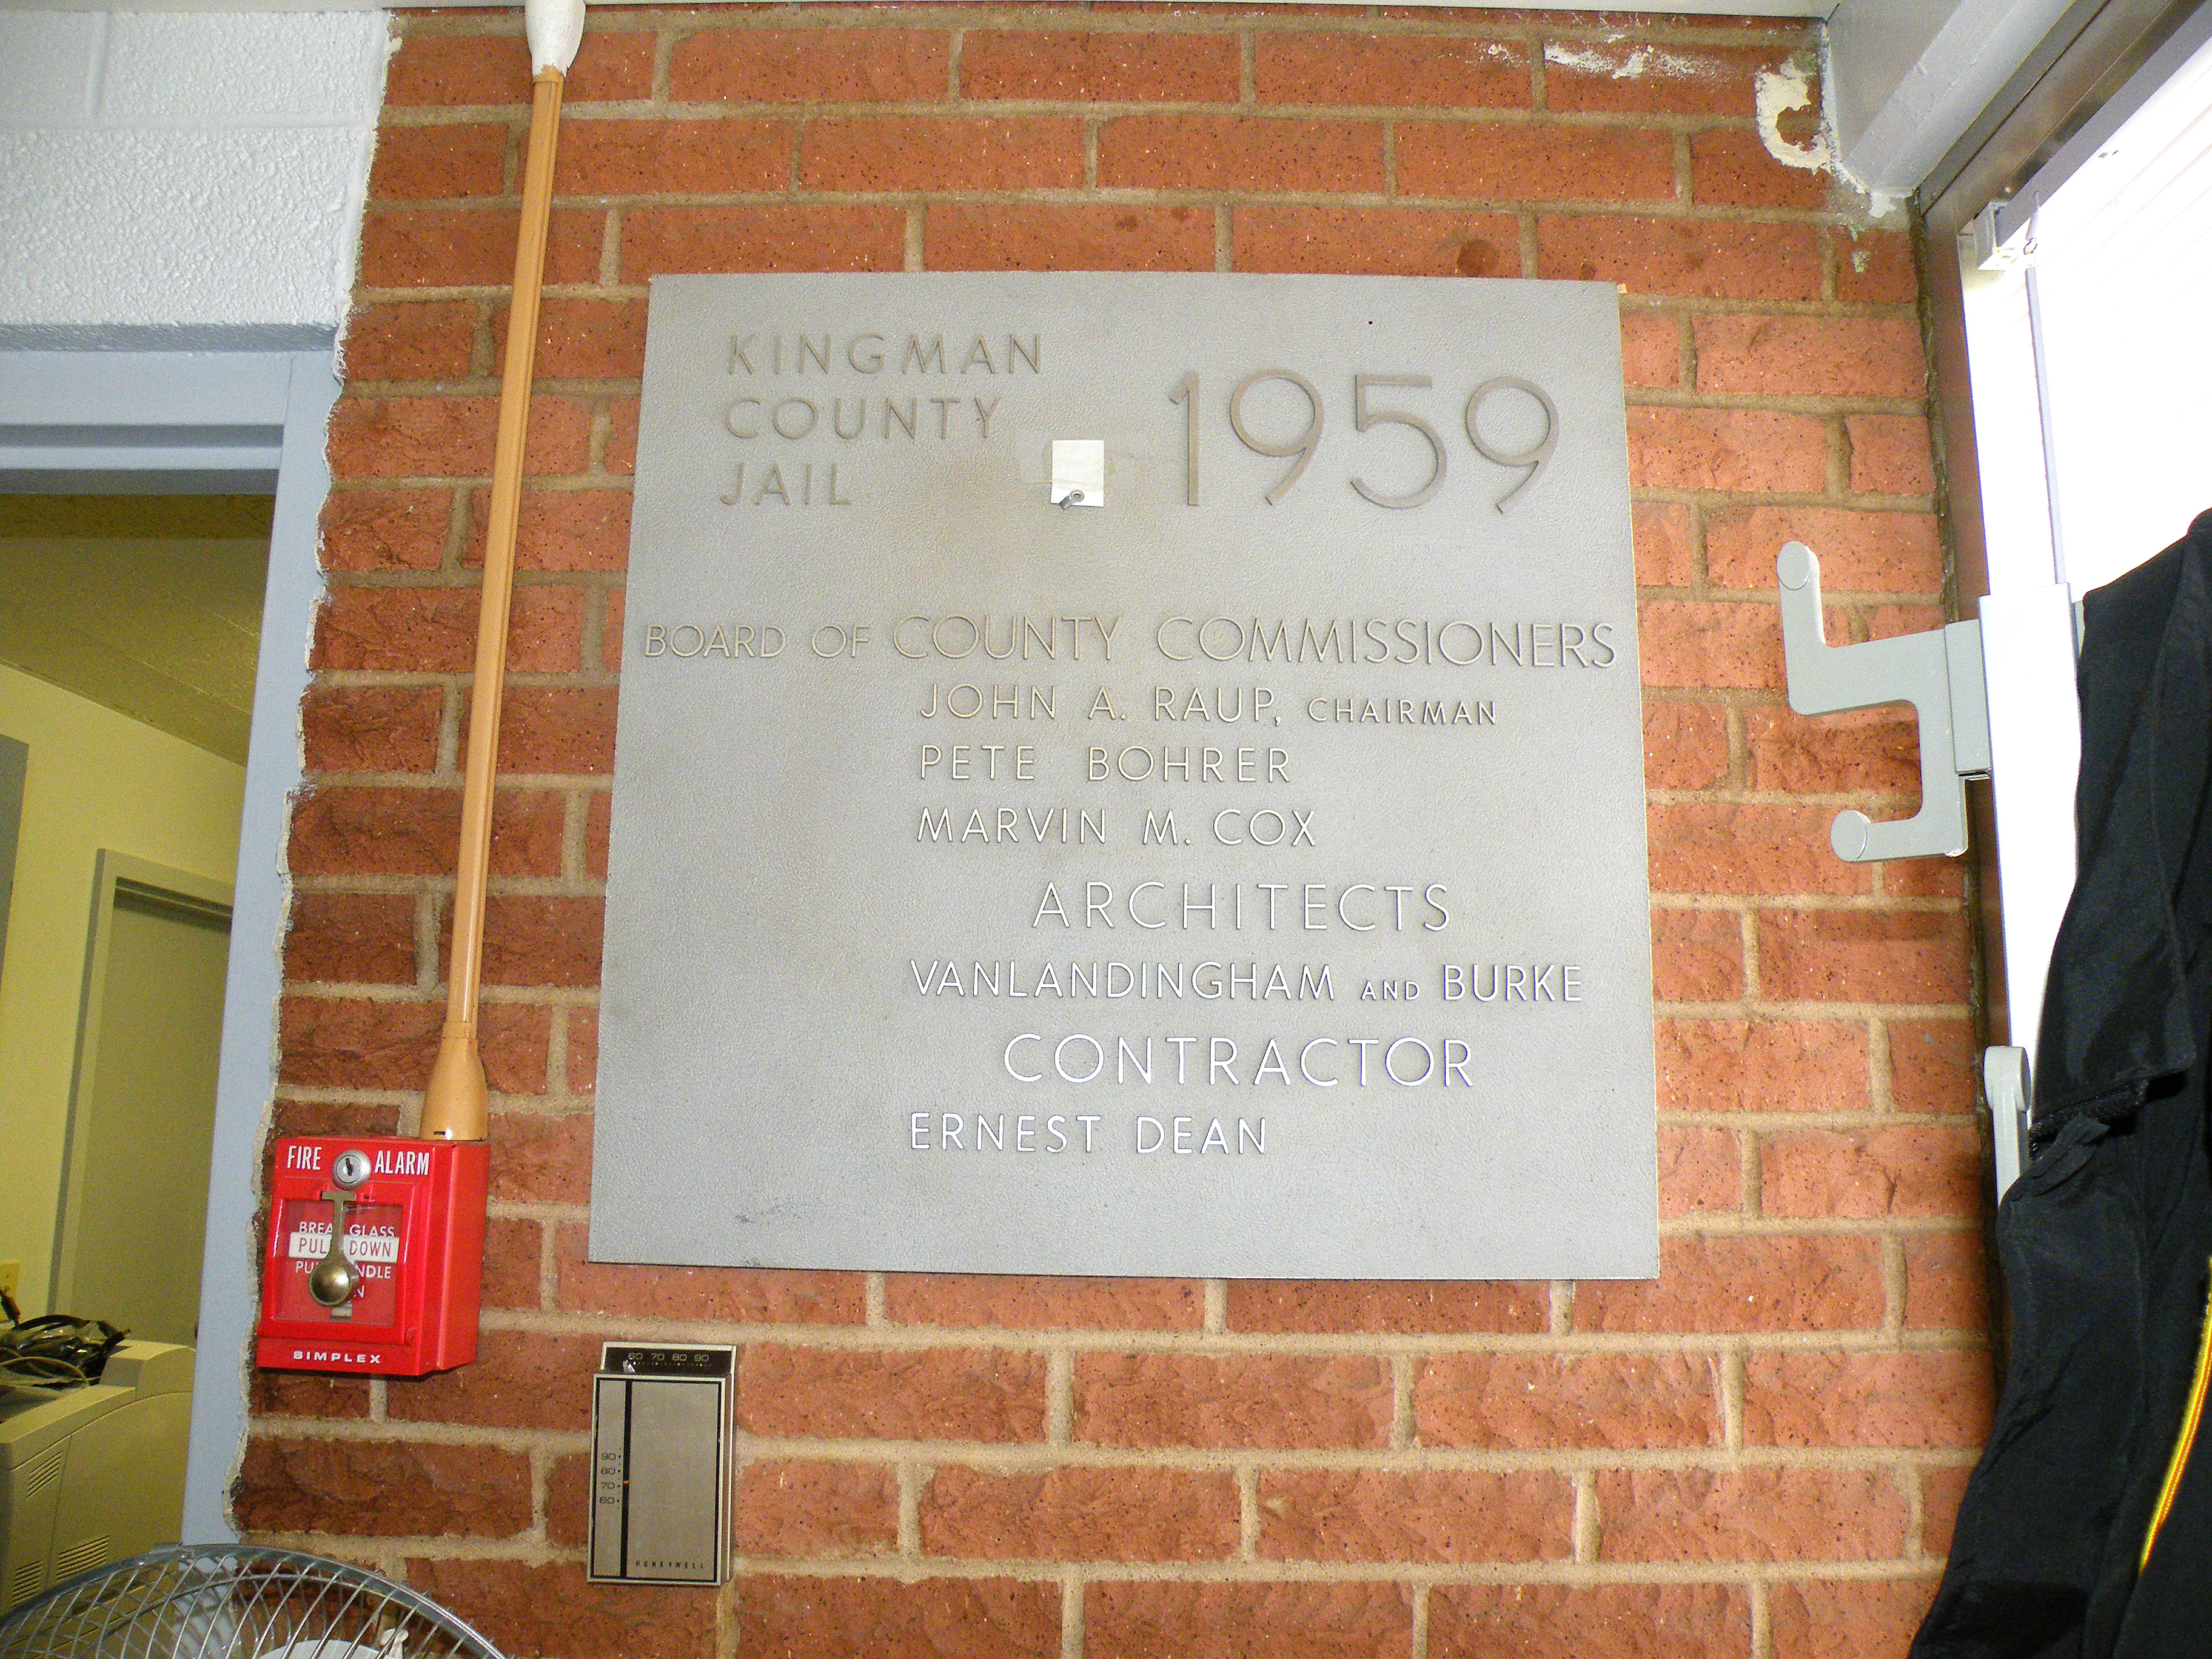 A large plaque on a brick wall